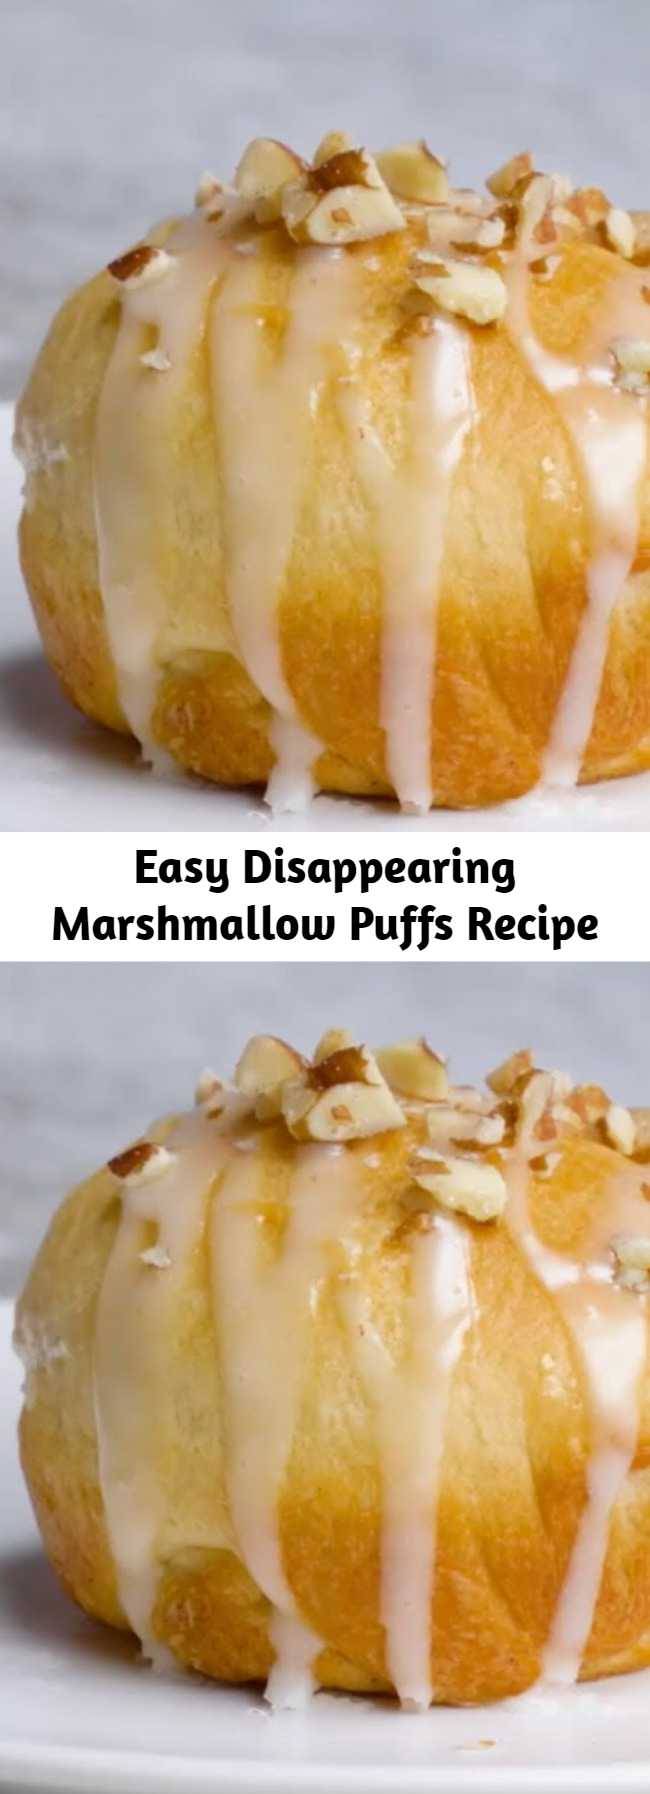 Easy Disappearing Marshmallow Puffs Recipe - Kids love making these tasty treats for Sunday breakfast. While baking, the marshmallows melt and blend with the cinnamon-sugar.